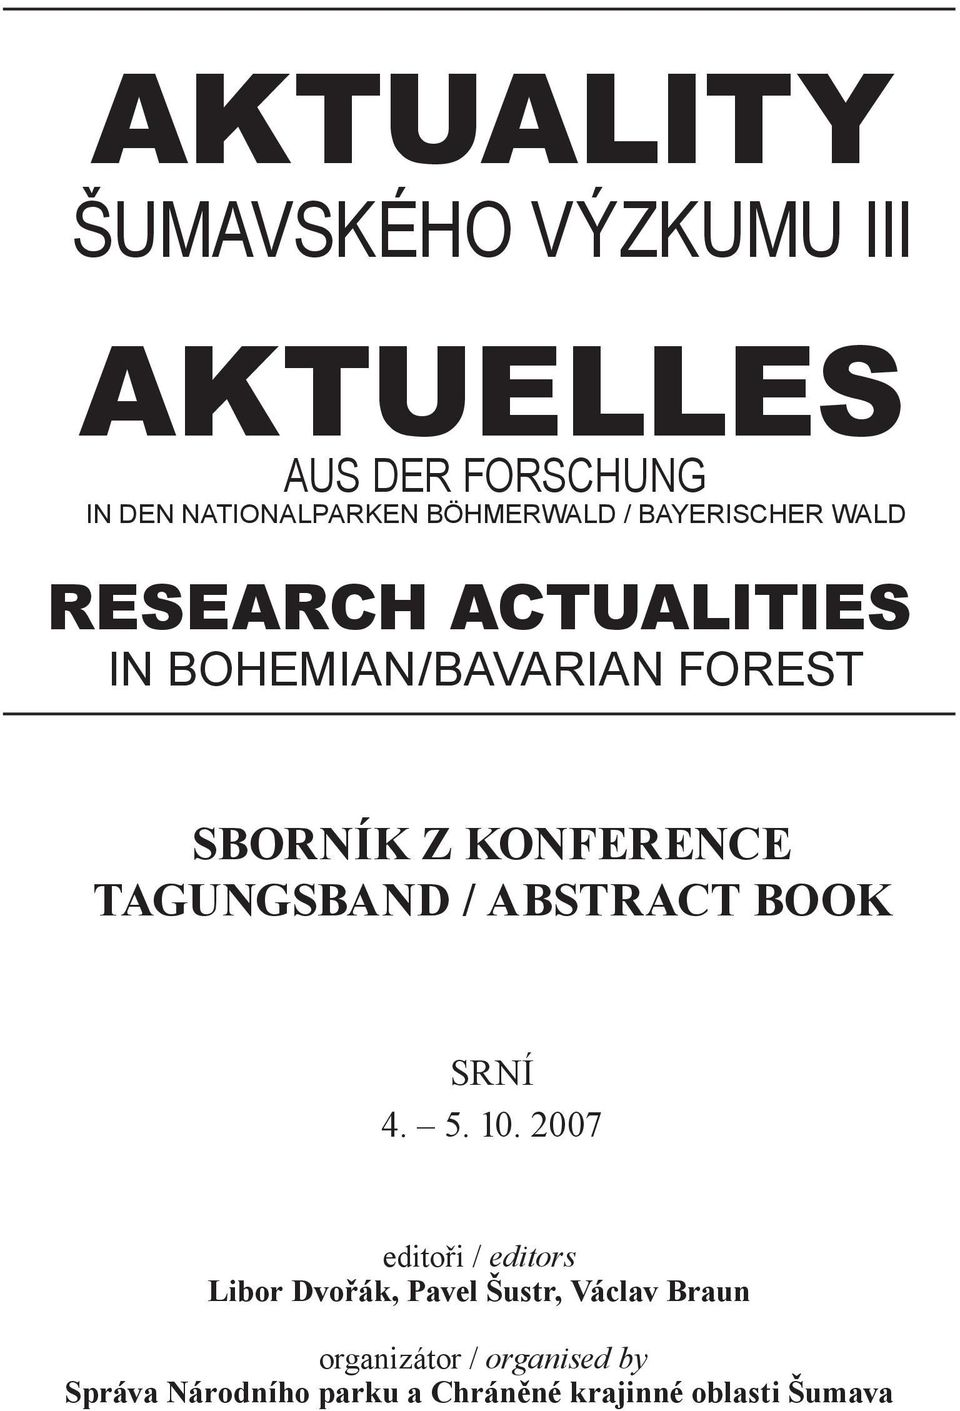 TAGUNGSBAND / ABSTRACT BOOK SRNÍ 4. 5. 10.